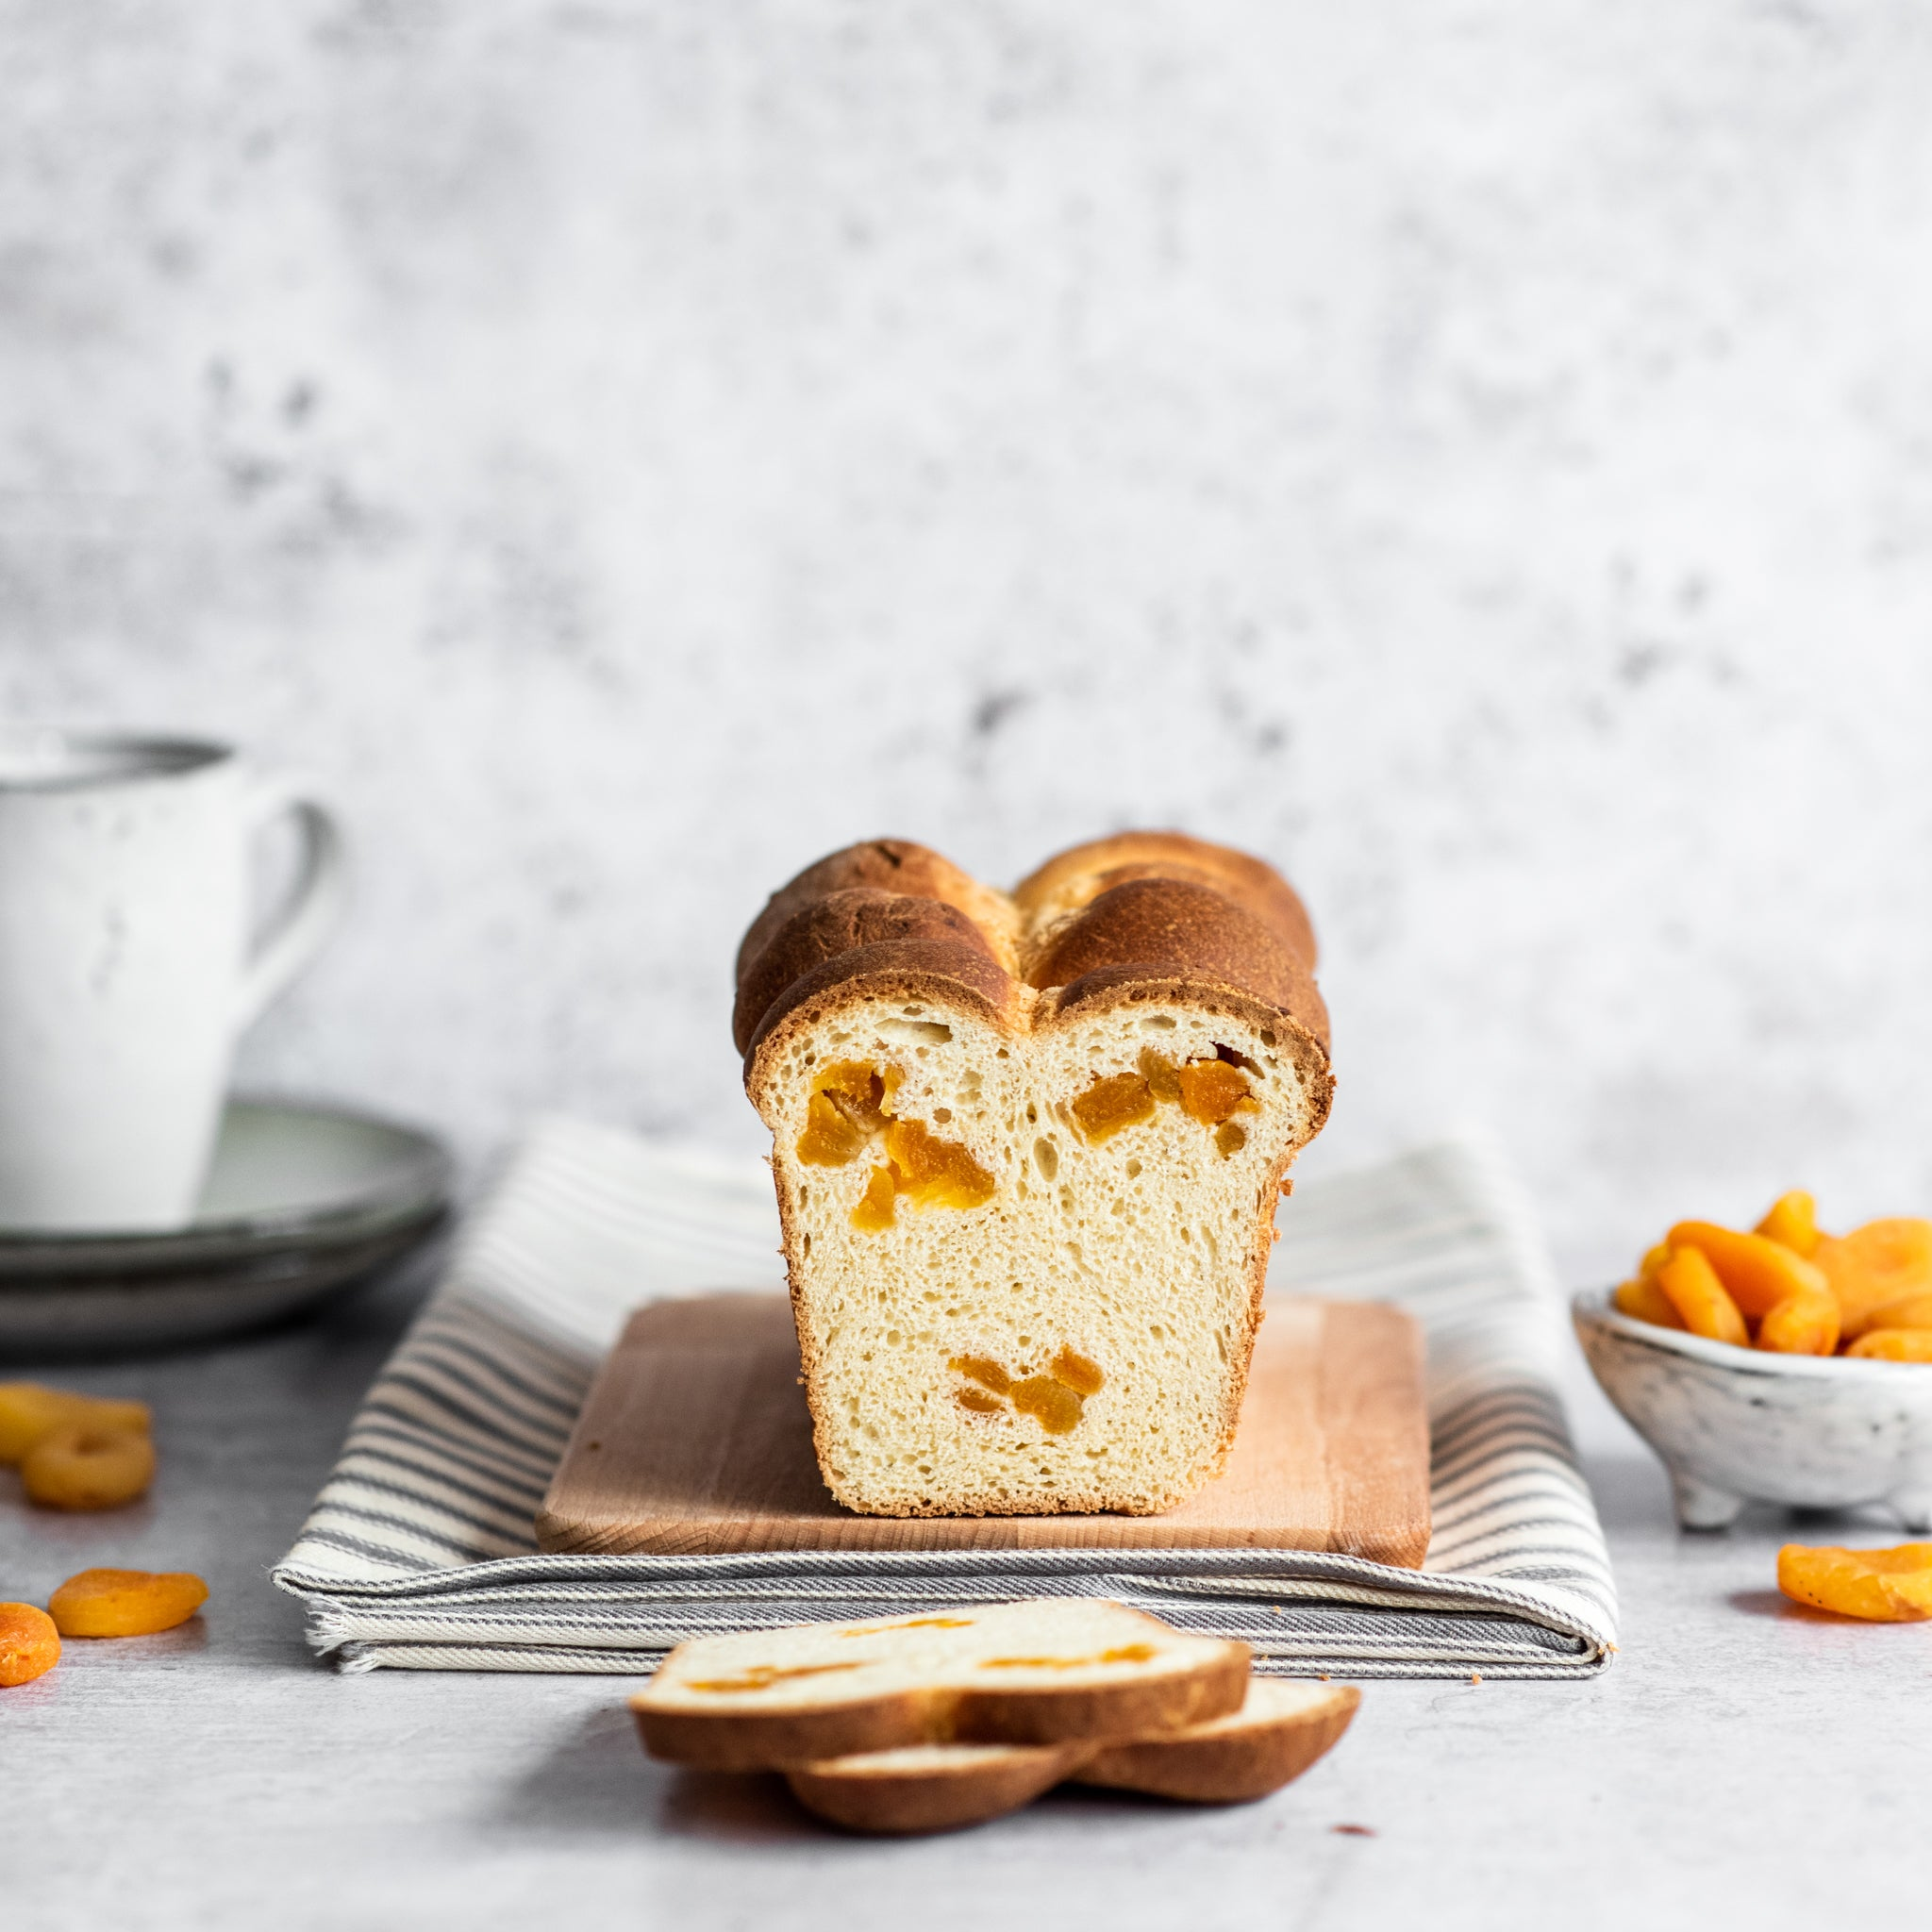 Brioche loaf with two slices cut in front, cup in background and pot of apricots